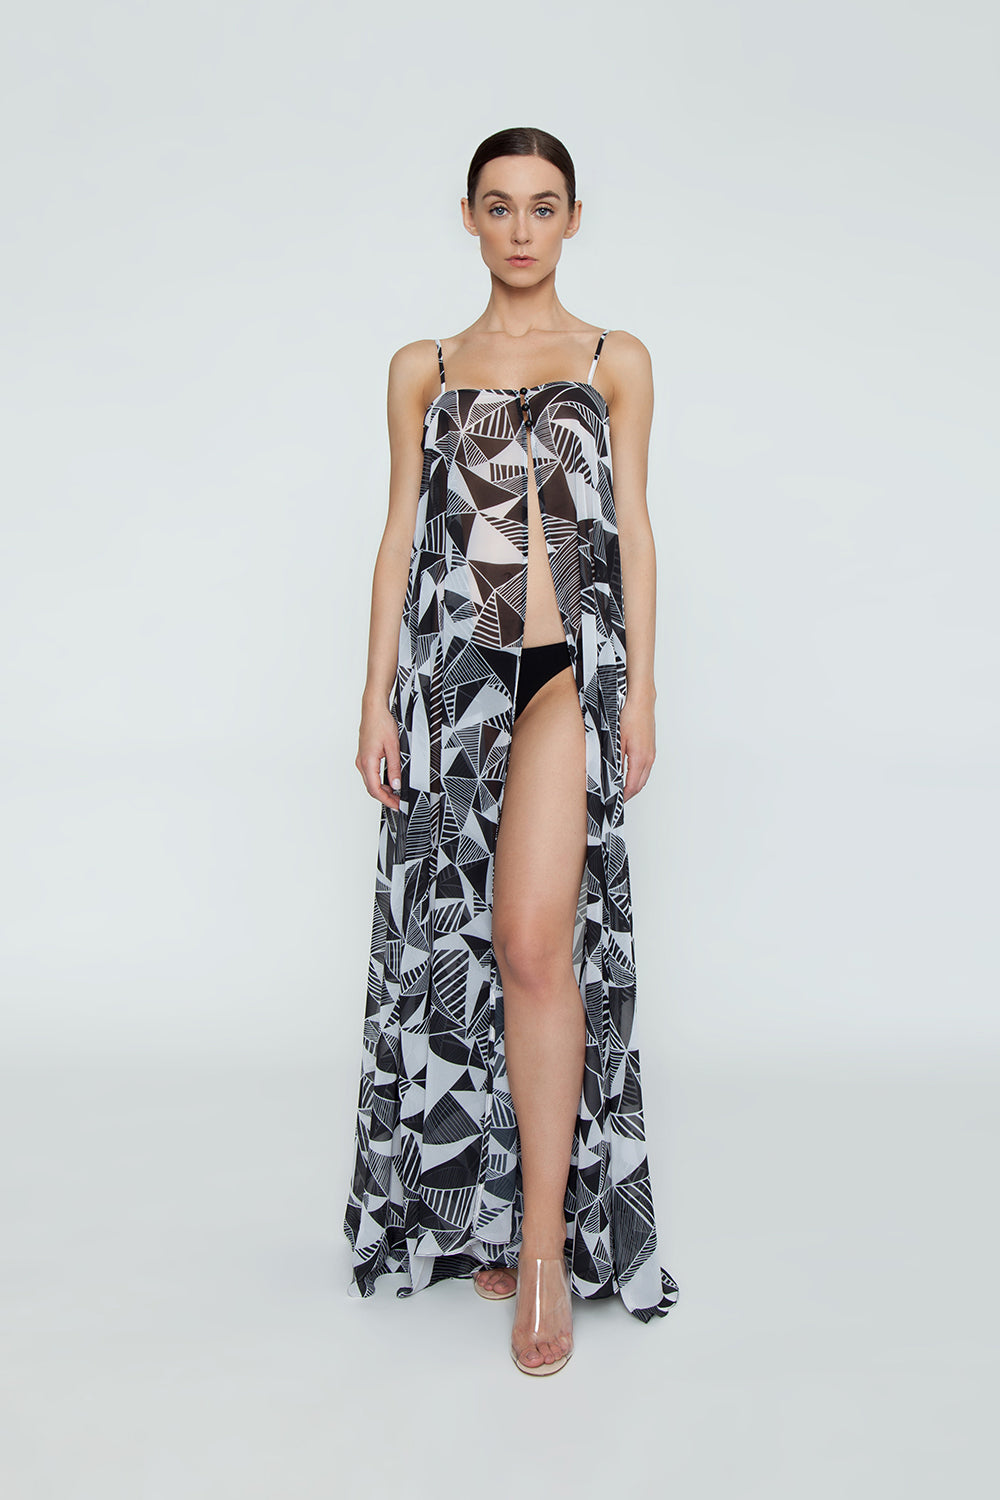 Check Out Open Front Flowy Maxi Dress - Black & White Umbrellas Print